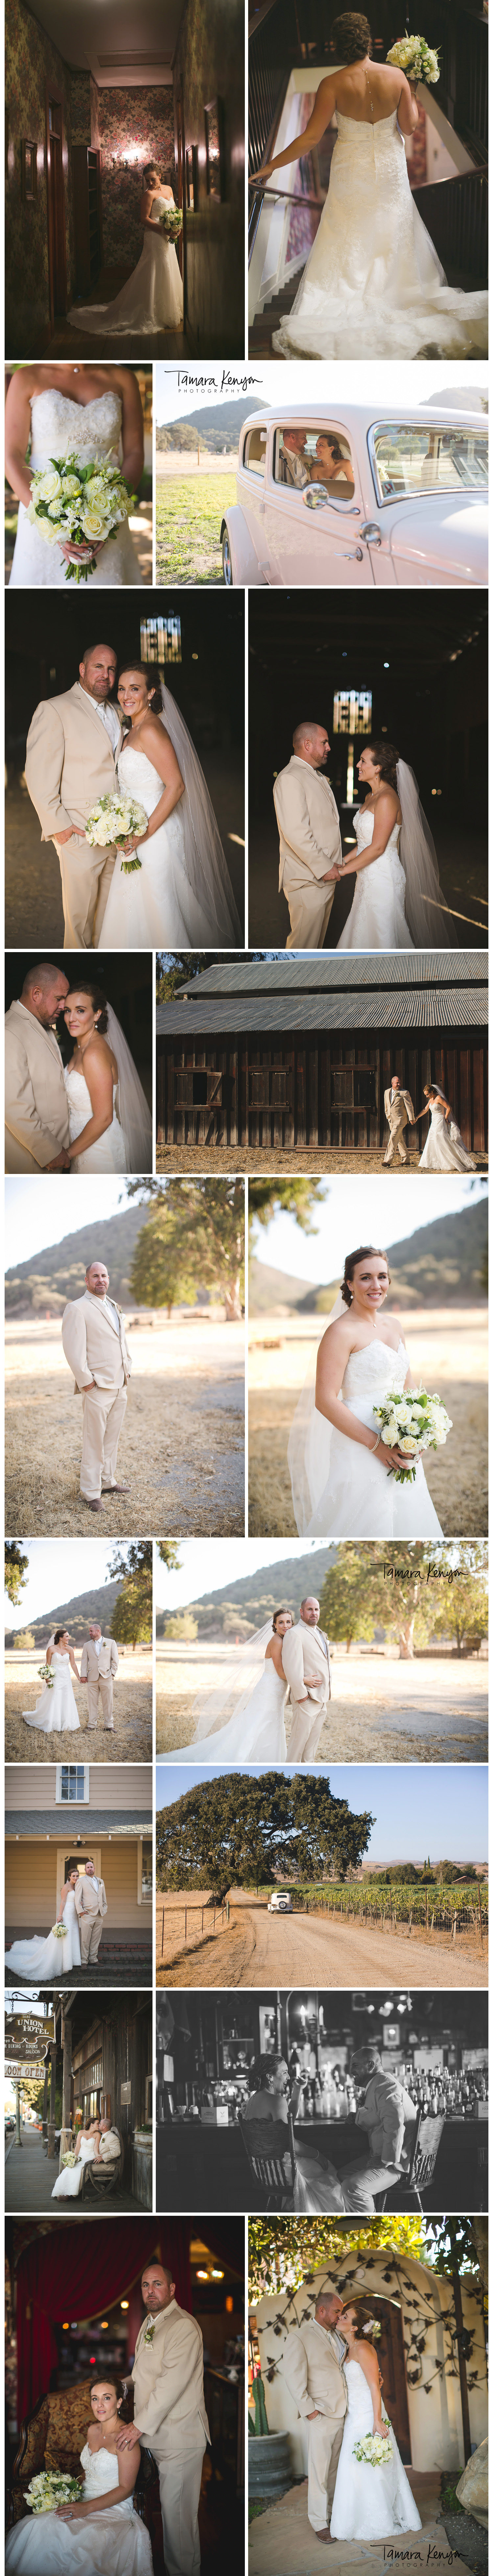 san_luis_obispo_california_wedding_vintage_cars_barn_bride_groom_idaho_wedding_boise